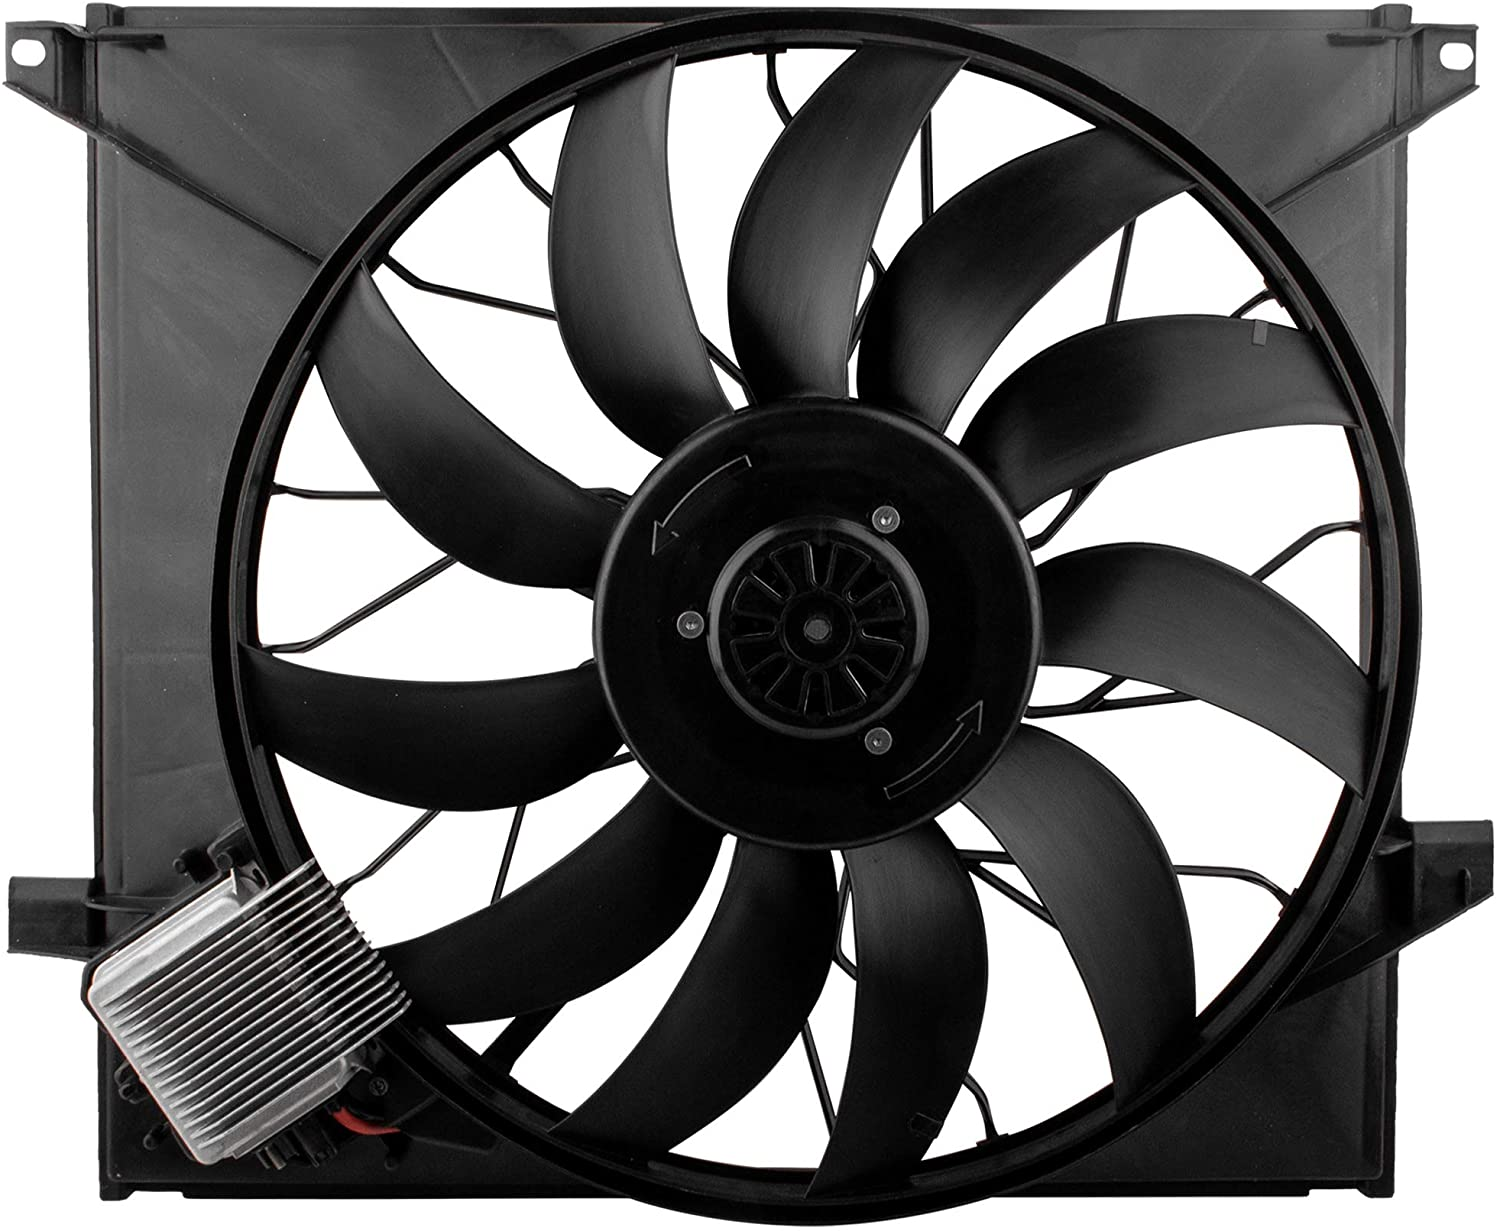 BOXI Radiator Brushless Cooling Fan Assembly Compatible with 2000 2001 2002 2003 Mercedes Benz W163 ML55 AMG (Replaces # 1635000293)